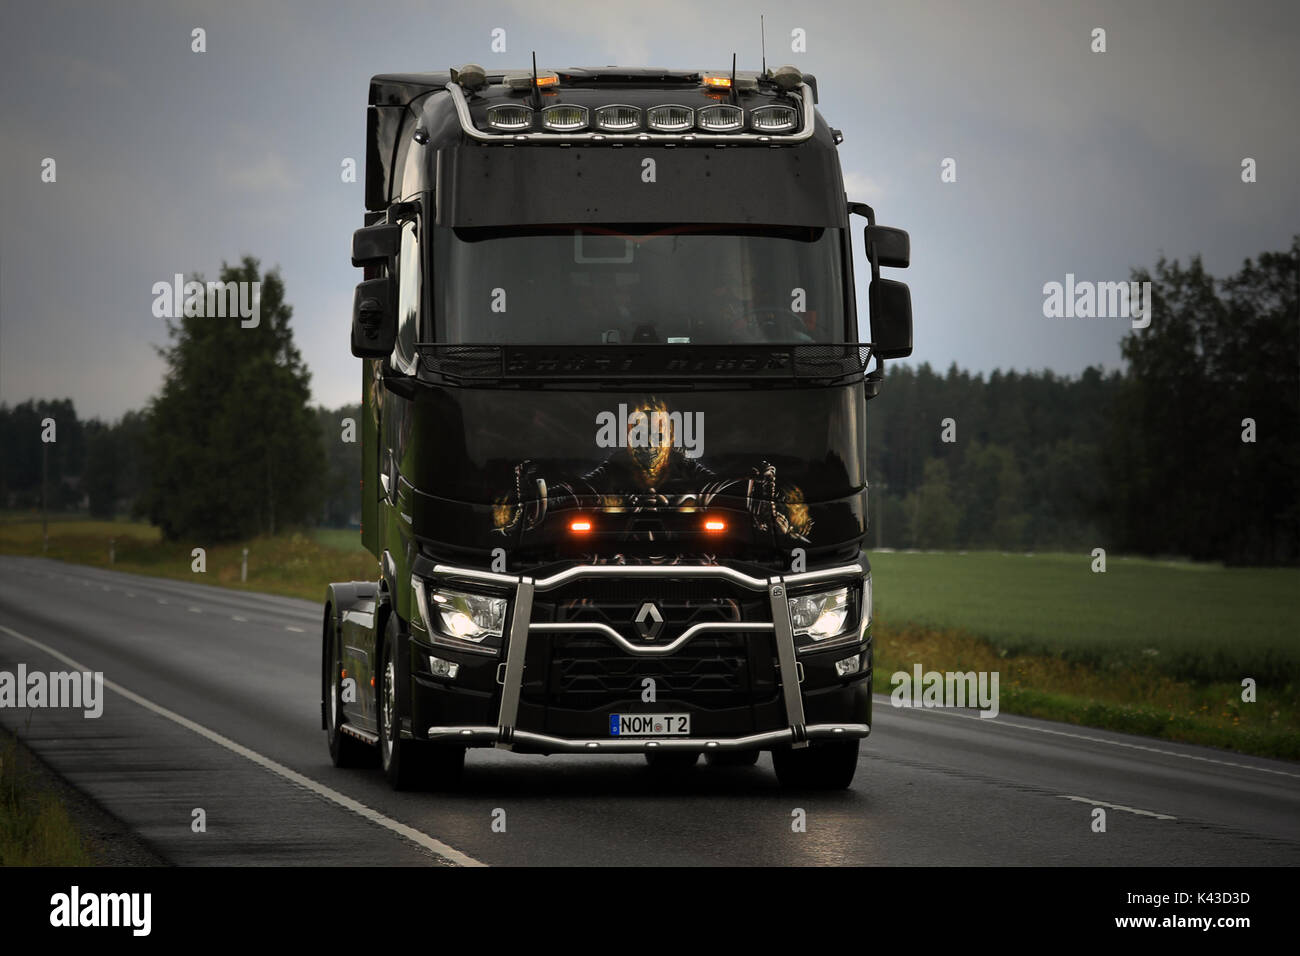 LUOPAJARVI, FINLAND - AUGUST 10, 2017: Renault Trucks T Ghostrider takes part in the truck convoy to the annual trucking event Power Truck Show 2017 i - Stock Image